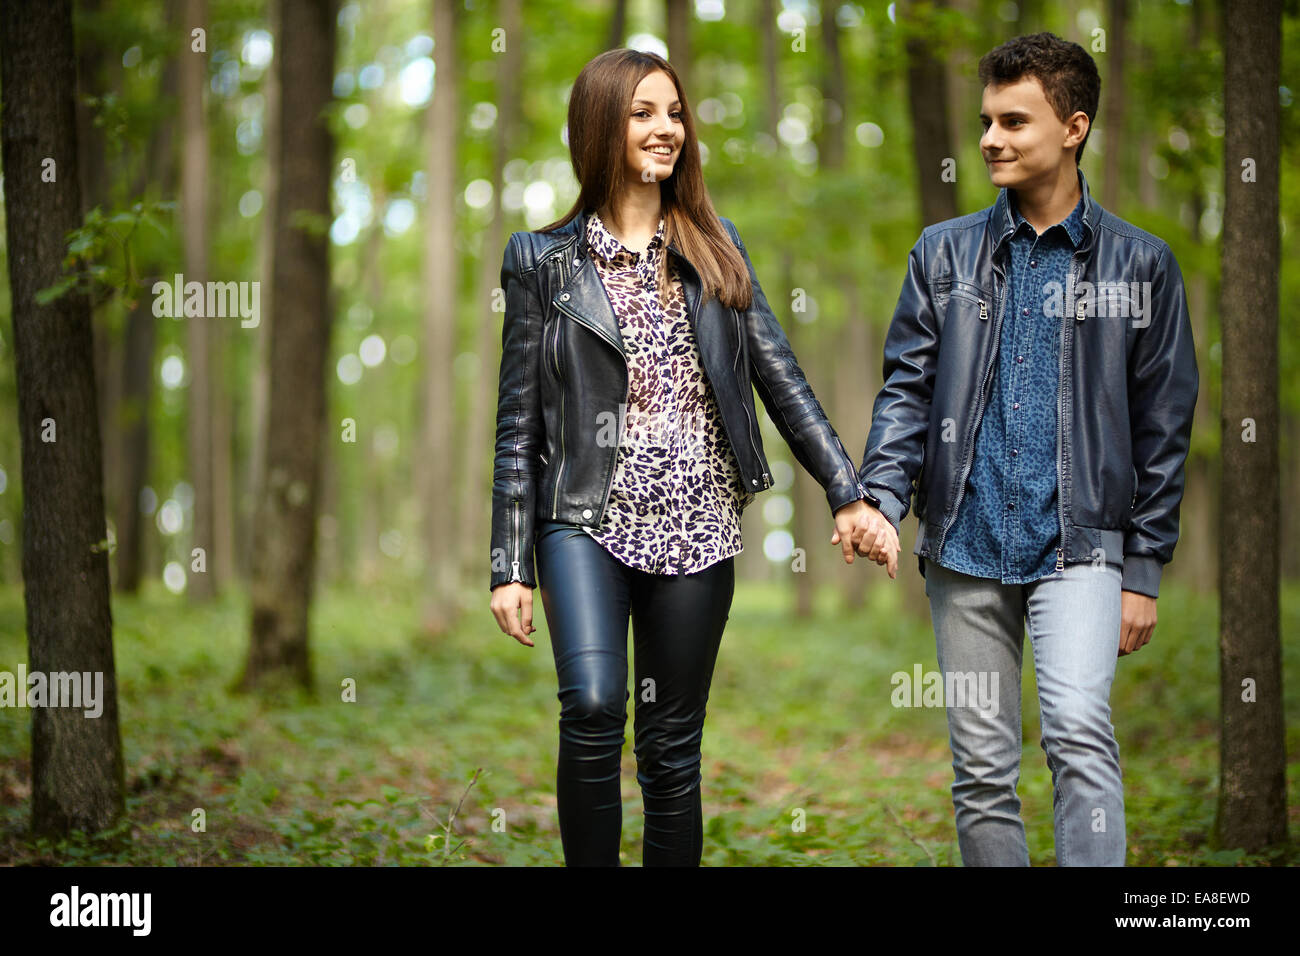 Teenagers Boy And Girl On A Date Taking A Walk Through